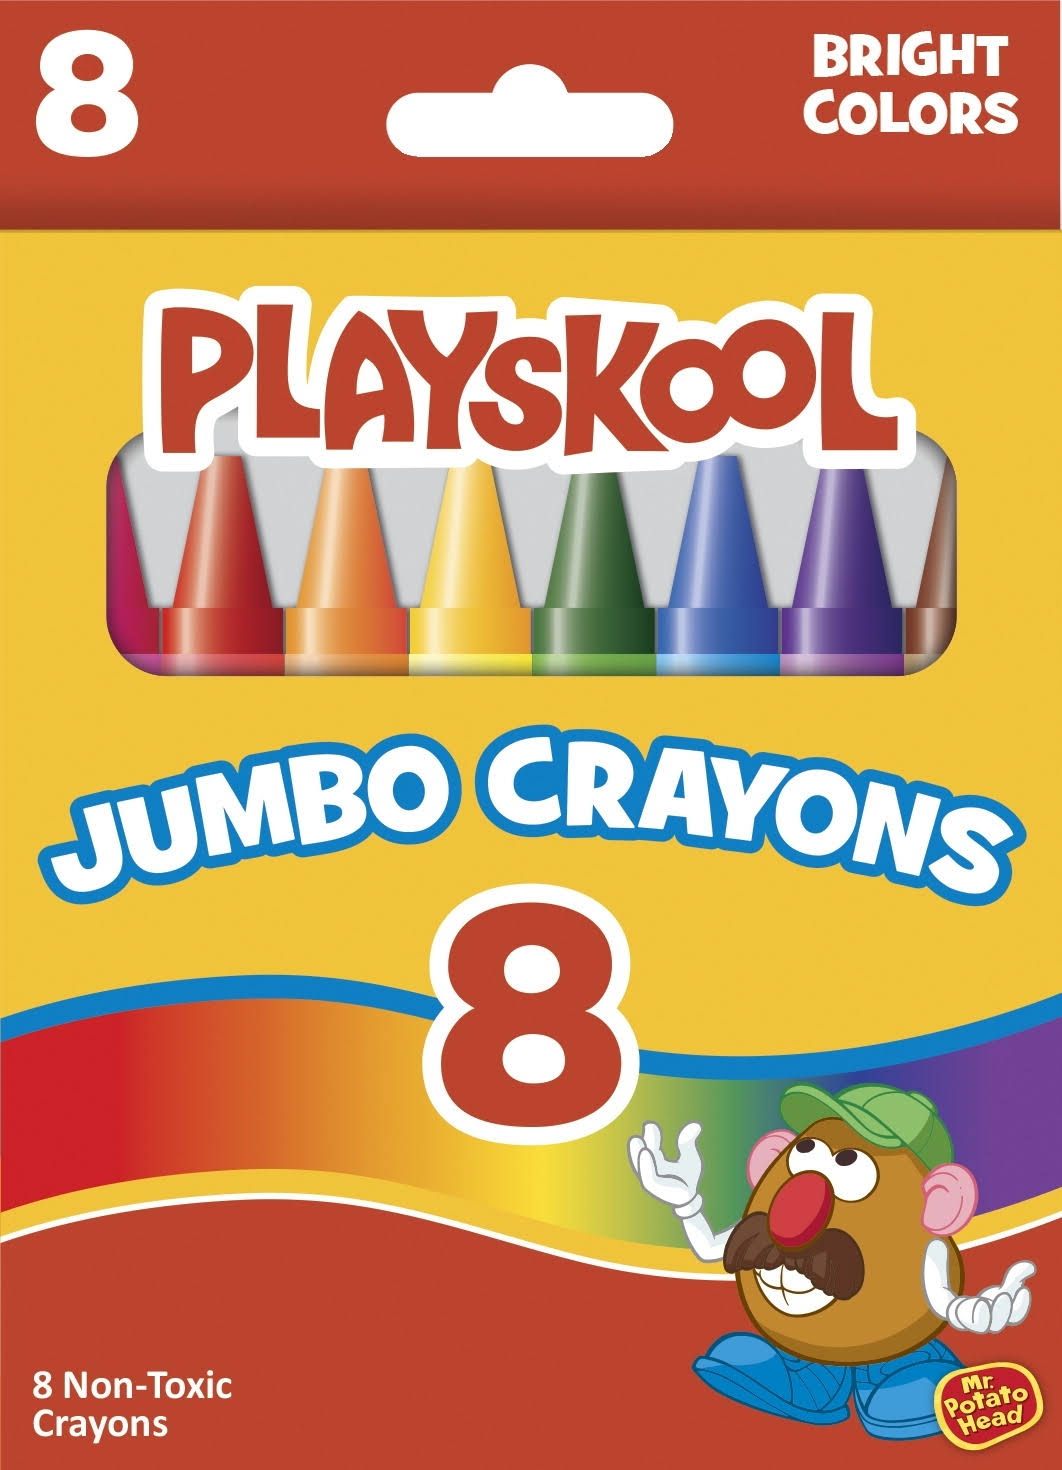 Playskool Jumbo Crayons - 8ct, 3 set